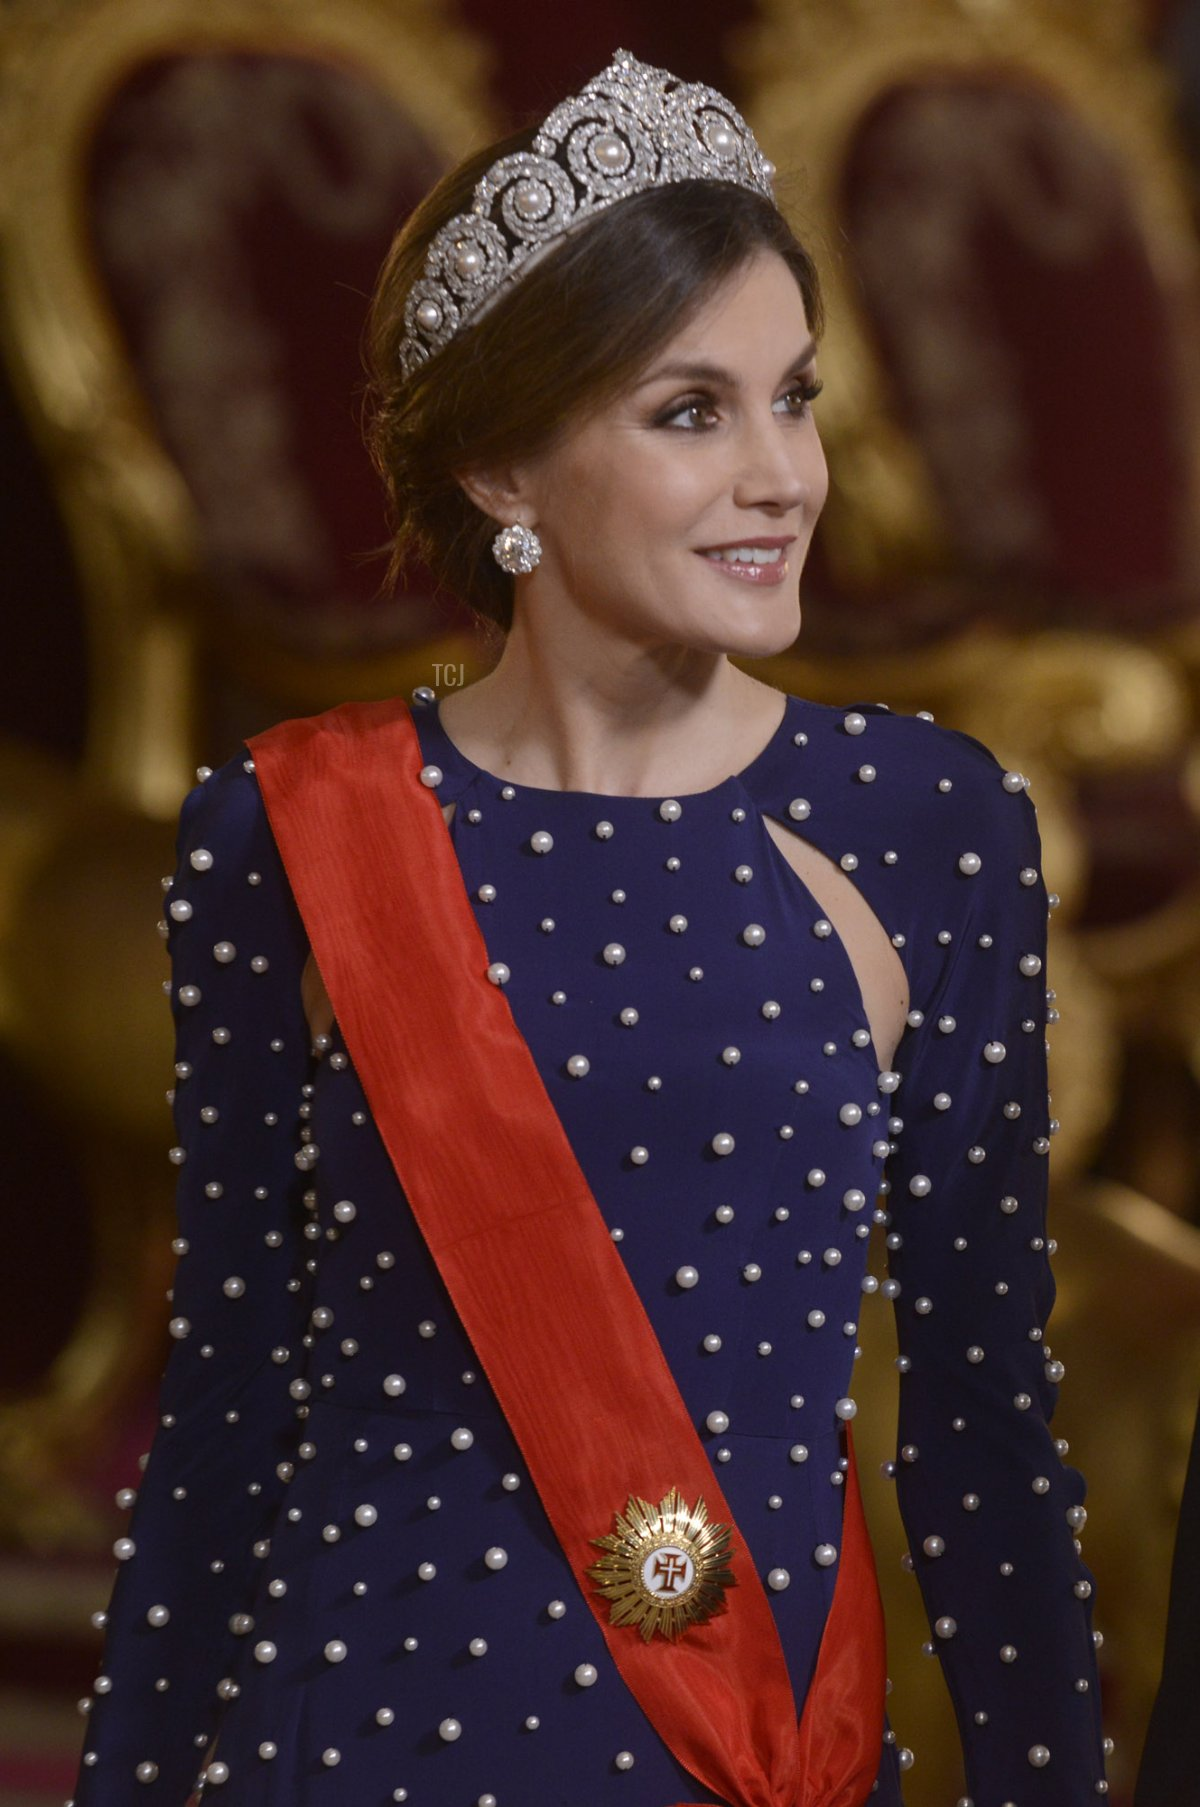 Queen Letizia of Spain and President of Portugal Marcelo Rebelo de Sousa attend a dinner gala for the President of Portugal Marcelo Rebelo de Sousa at the Royal Palace on April 16, 2018 in Madrid, Spain